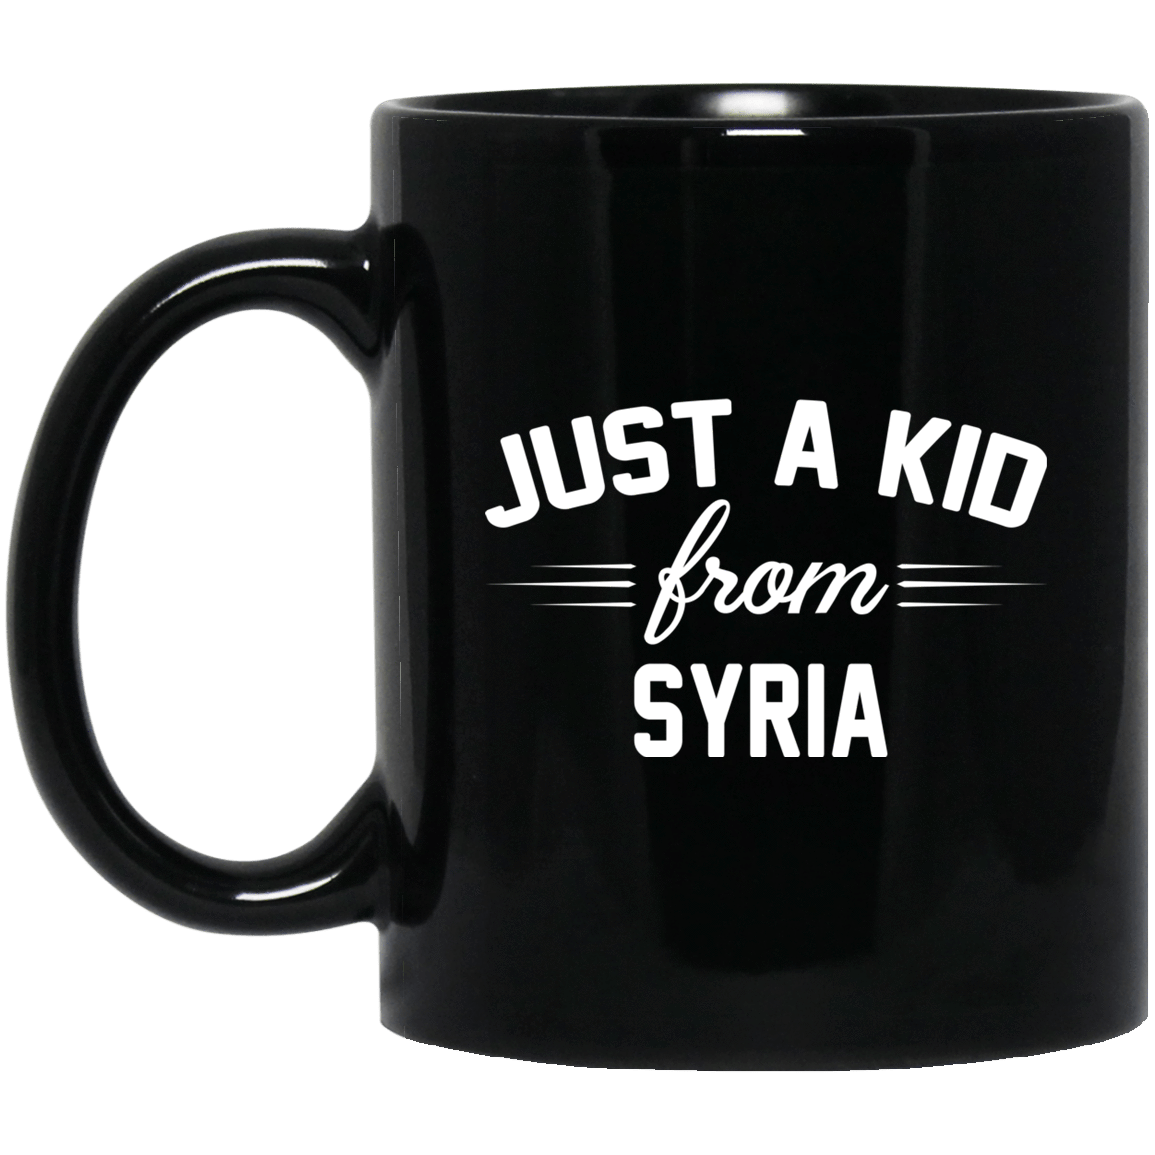 Just A Kid Store | Syria Mug 1065-10181-72111099-49307 - Tee Ript